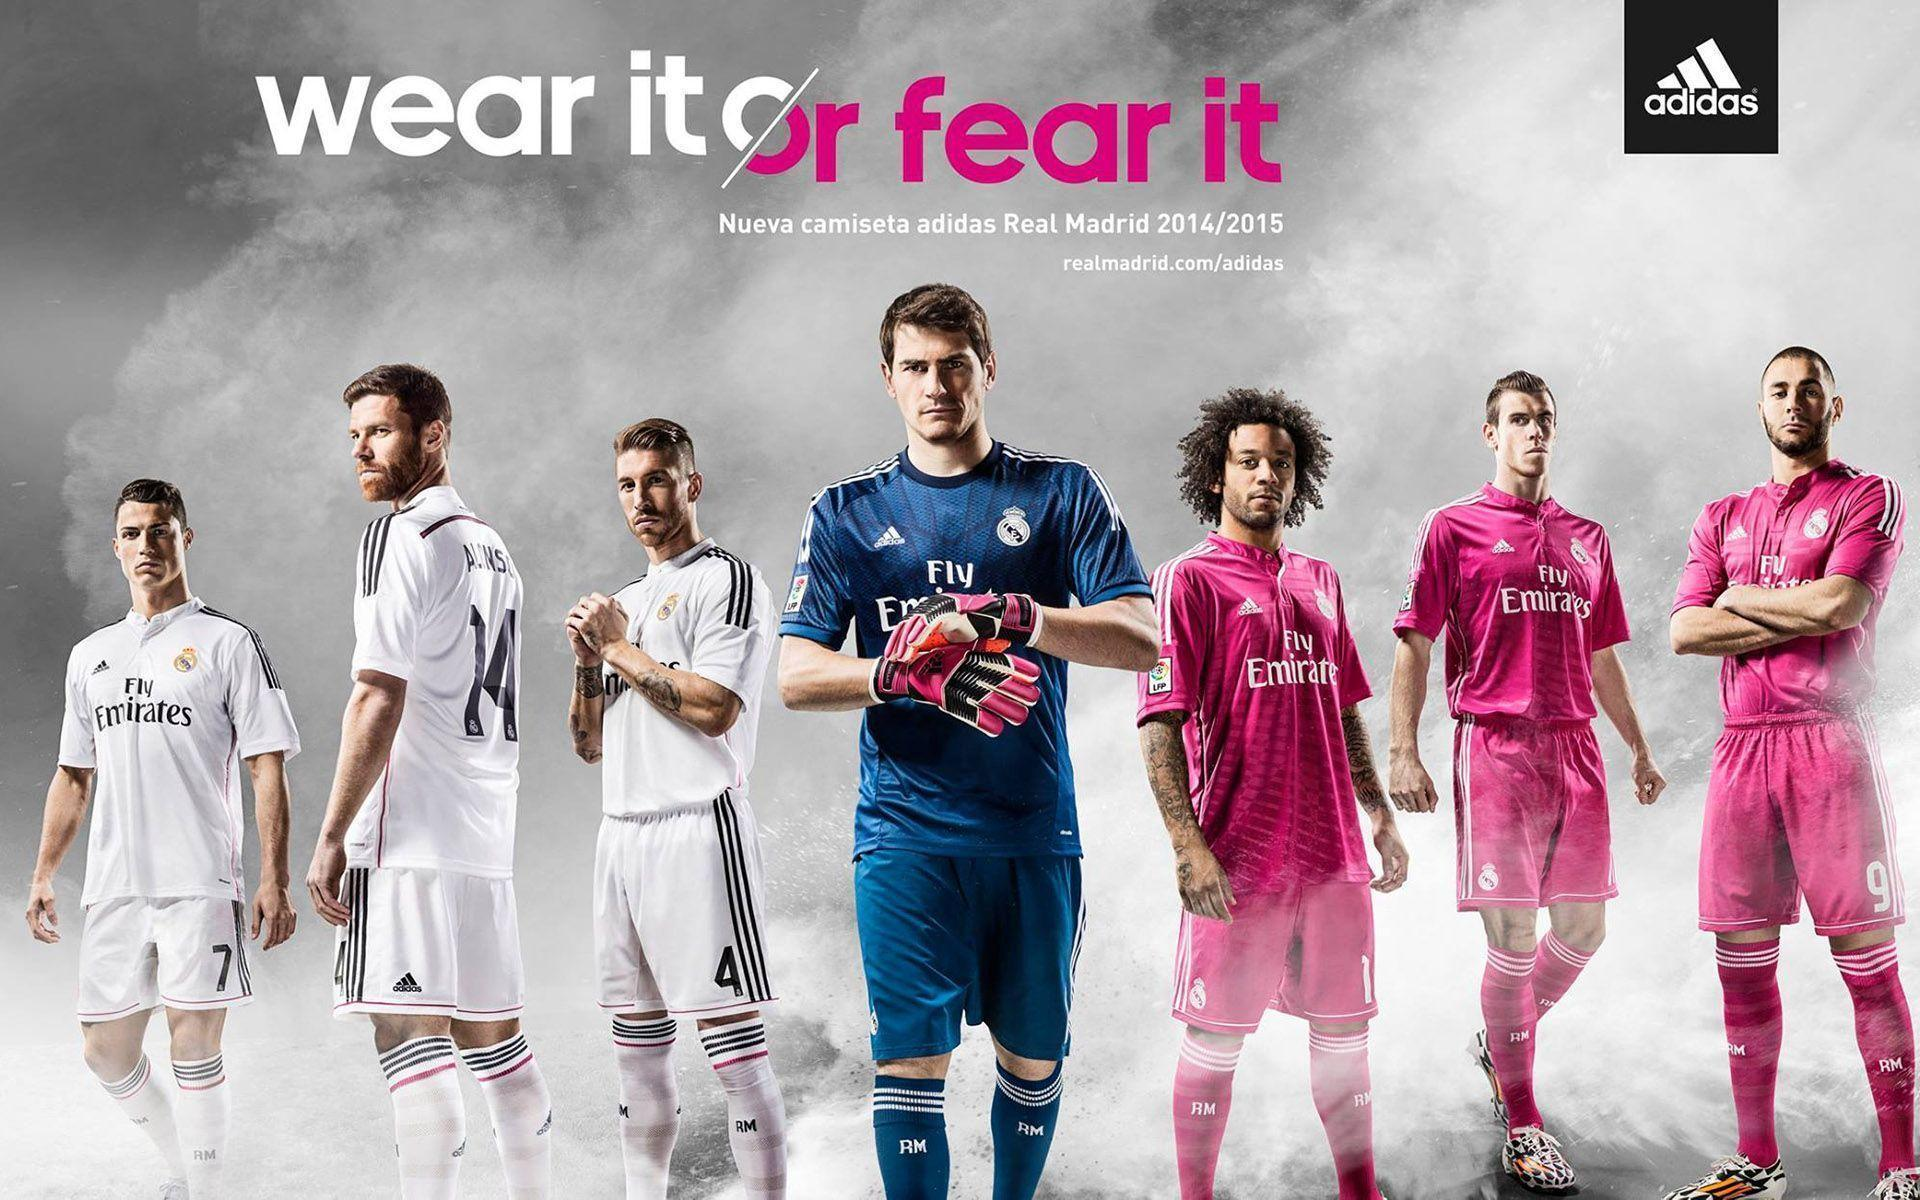 New Real Madrid Jersey Season 2014 2015 Wallpaper HD For Desktop